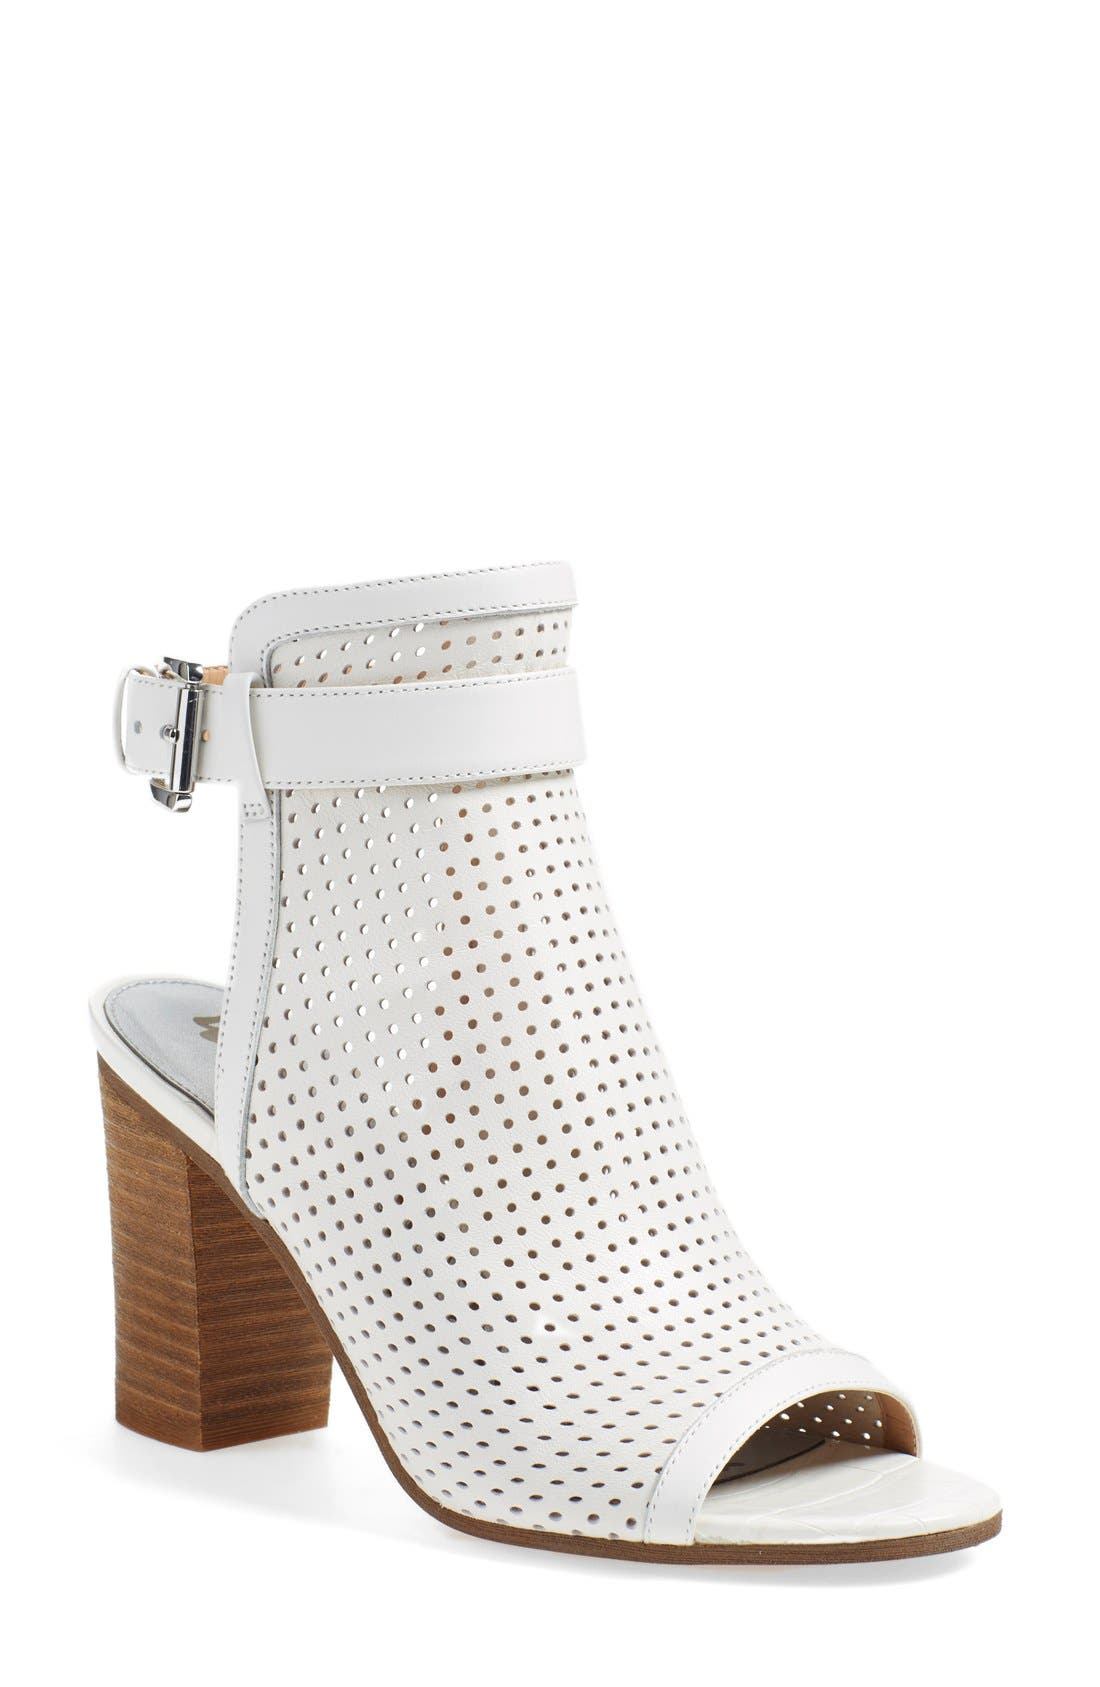 Main Image - Sam Edelman 'Emmie' Open Toe Boot (Women)